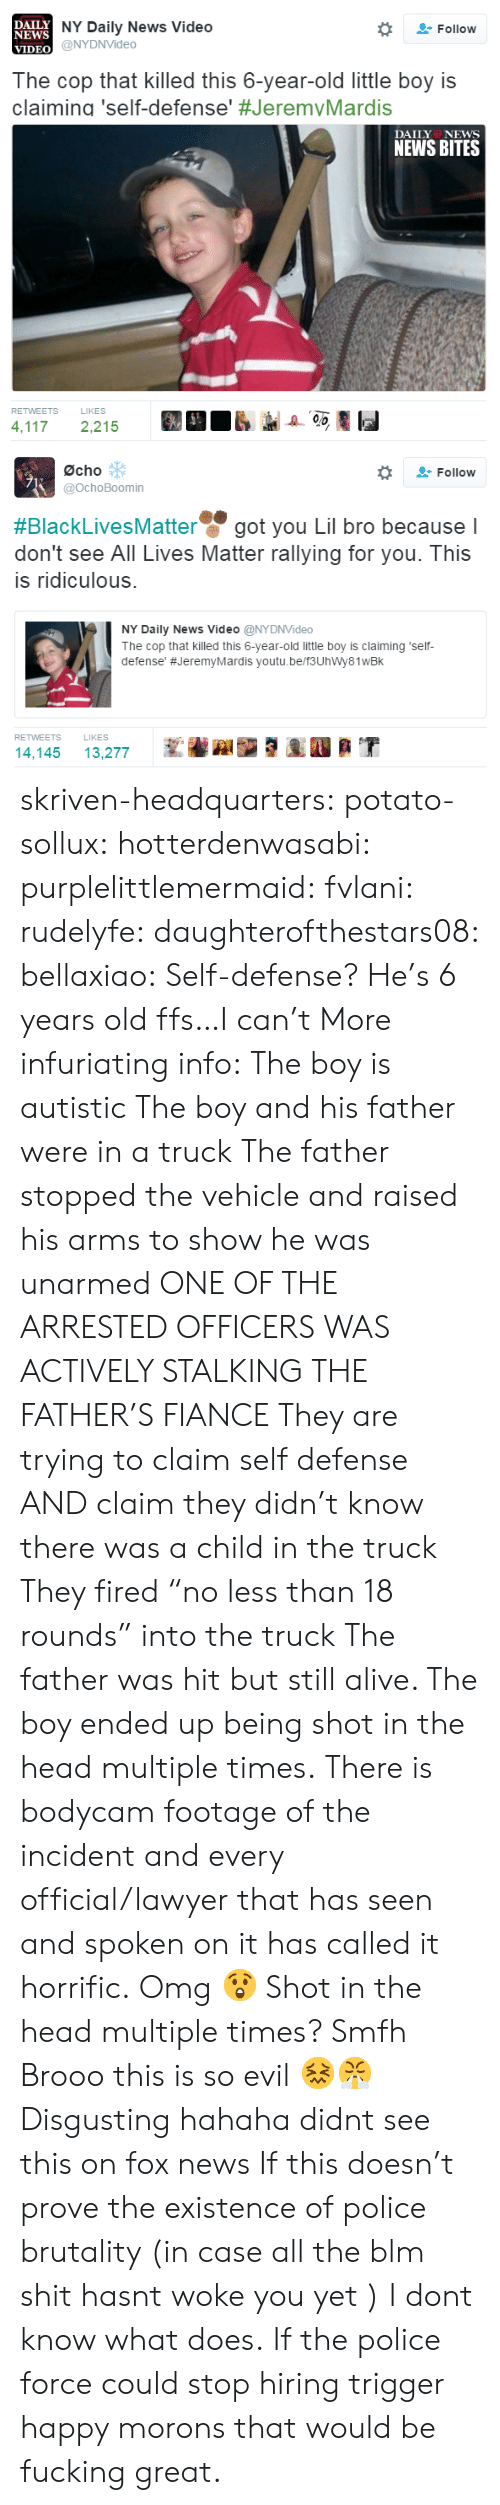 """All Lives Matter: DAILY  NEWS  VIDEO  NY Daily News Video  @NYDNVideo  Follow  The cop that killed this 6-year-old little boy is  claiming 'self-defense' #JeremvMardis  DAILY NEws  NEWS BITES  RETWEETS  LIKES  4,1172,215   Øcho  @ochoBoomin  , Follow  #BlackLivesMatter g  don't see All Lives Matter rallying for you. This  is ridiculous.  ot vou Lil bro because l  NY Daily News Video @NYDNVideo  The cop that killed this 6-year-old little boy is claiming 'self  defense' #JeremyMardis youtu.be/f3UhWy81WBk  RETWEETS  LIKES  14,14513,277 skriven-headquarters: potato-sollux:   hotterdenwasabi:  purplelittlemermaid:  fvlani:   rudelyfe:   daughterofthestars08:   bellaxiao:  Self-defense? He's 6 years old ffs…I can't   More infuriating info: The boy is autistic The boy and his father were in a truck The father stopped the vehicle and raised his arms to show he was unarmed ONE OF THE ARRESTED OFFICERS WAS ACTIVELY STALKING THE FATHER'S FIANCE They are trying to claim self defense AND claim they didn't know there was a child in the truck They fired """"no less than 18 rounds"""" into the truck The father was hit but still alive. The boy ended up being shot in the head multiple times. There is bodycam footage of the incident and every official/lawyer that has seen and spoken on it has called it horrific.   Omg 😲   Shot in the head multiple times? Smfh   Brooo this is so evil 😖😤   Disgusting  hahaha didnt see this on fox news   If this doesn't prove the existence of police brutality  (in case all the blm shit hasnt woke you yet ) I dont know what does.   If the police force could stop hiring trigger happy morons that would be fucking great."""